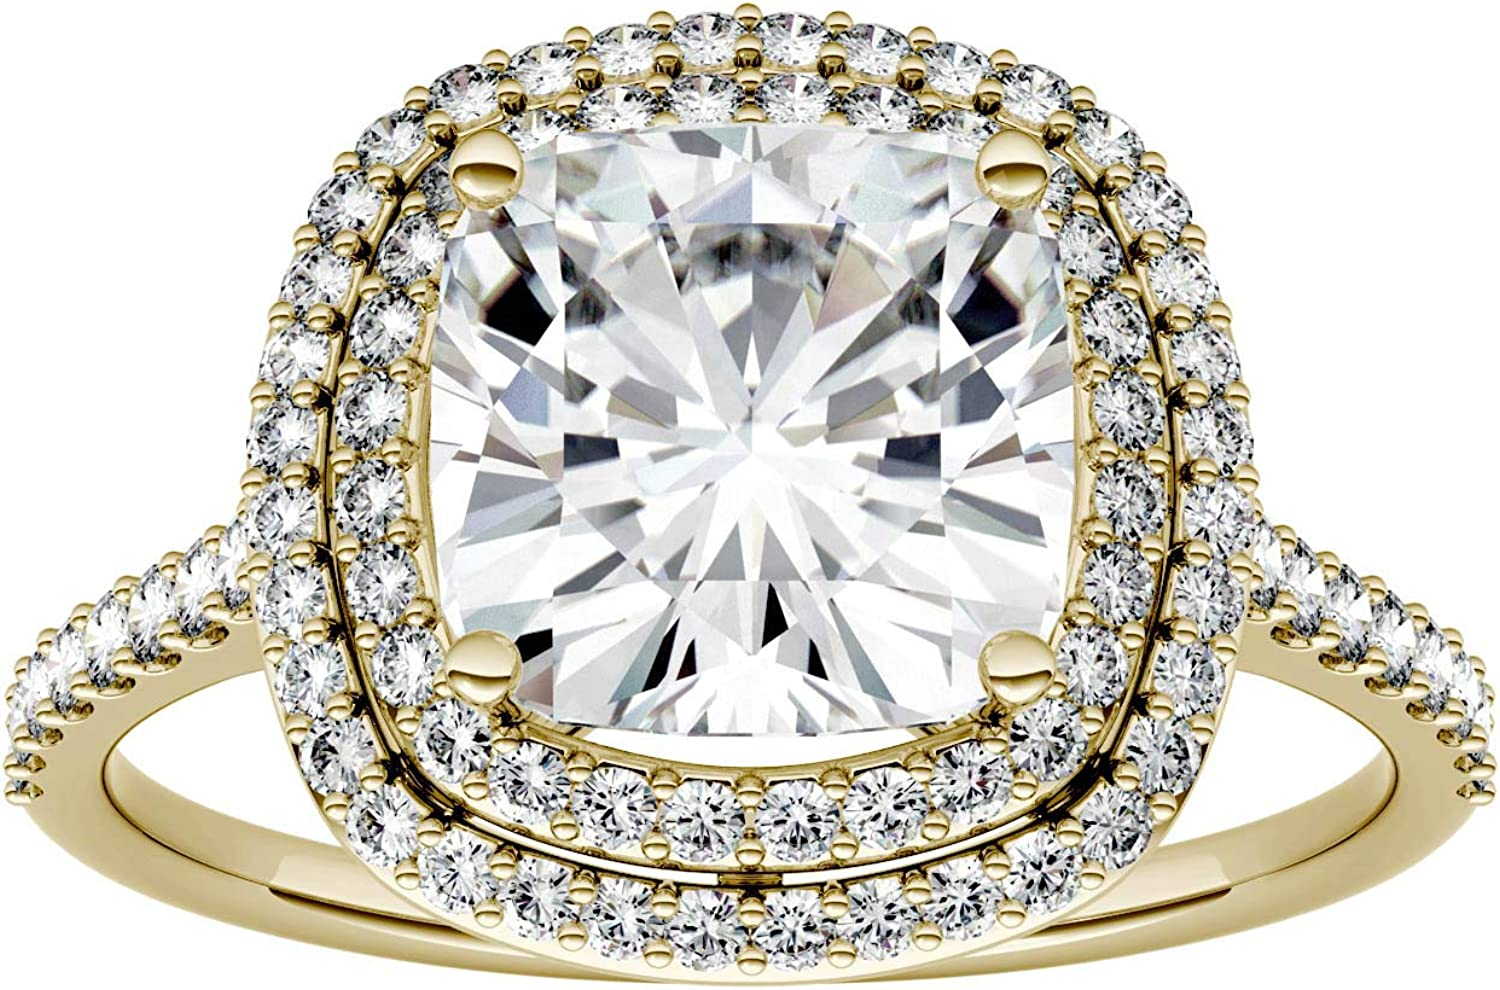 Gold Moissanite Opening large release [Alternative dealer] sale by Charles Colvard Engageme 8.0mm Halo Cushion